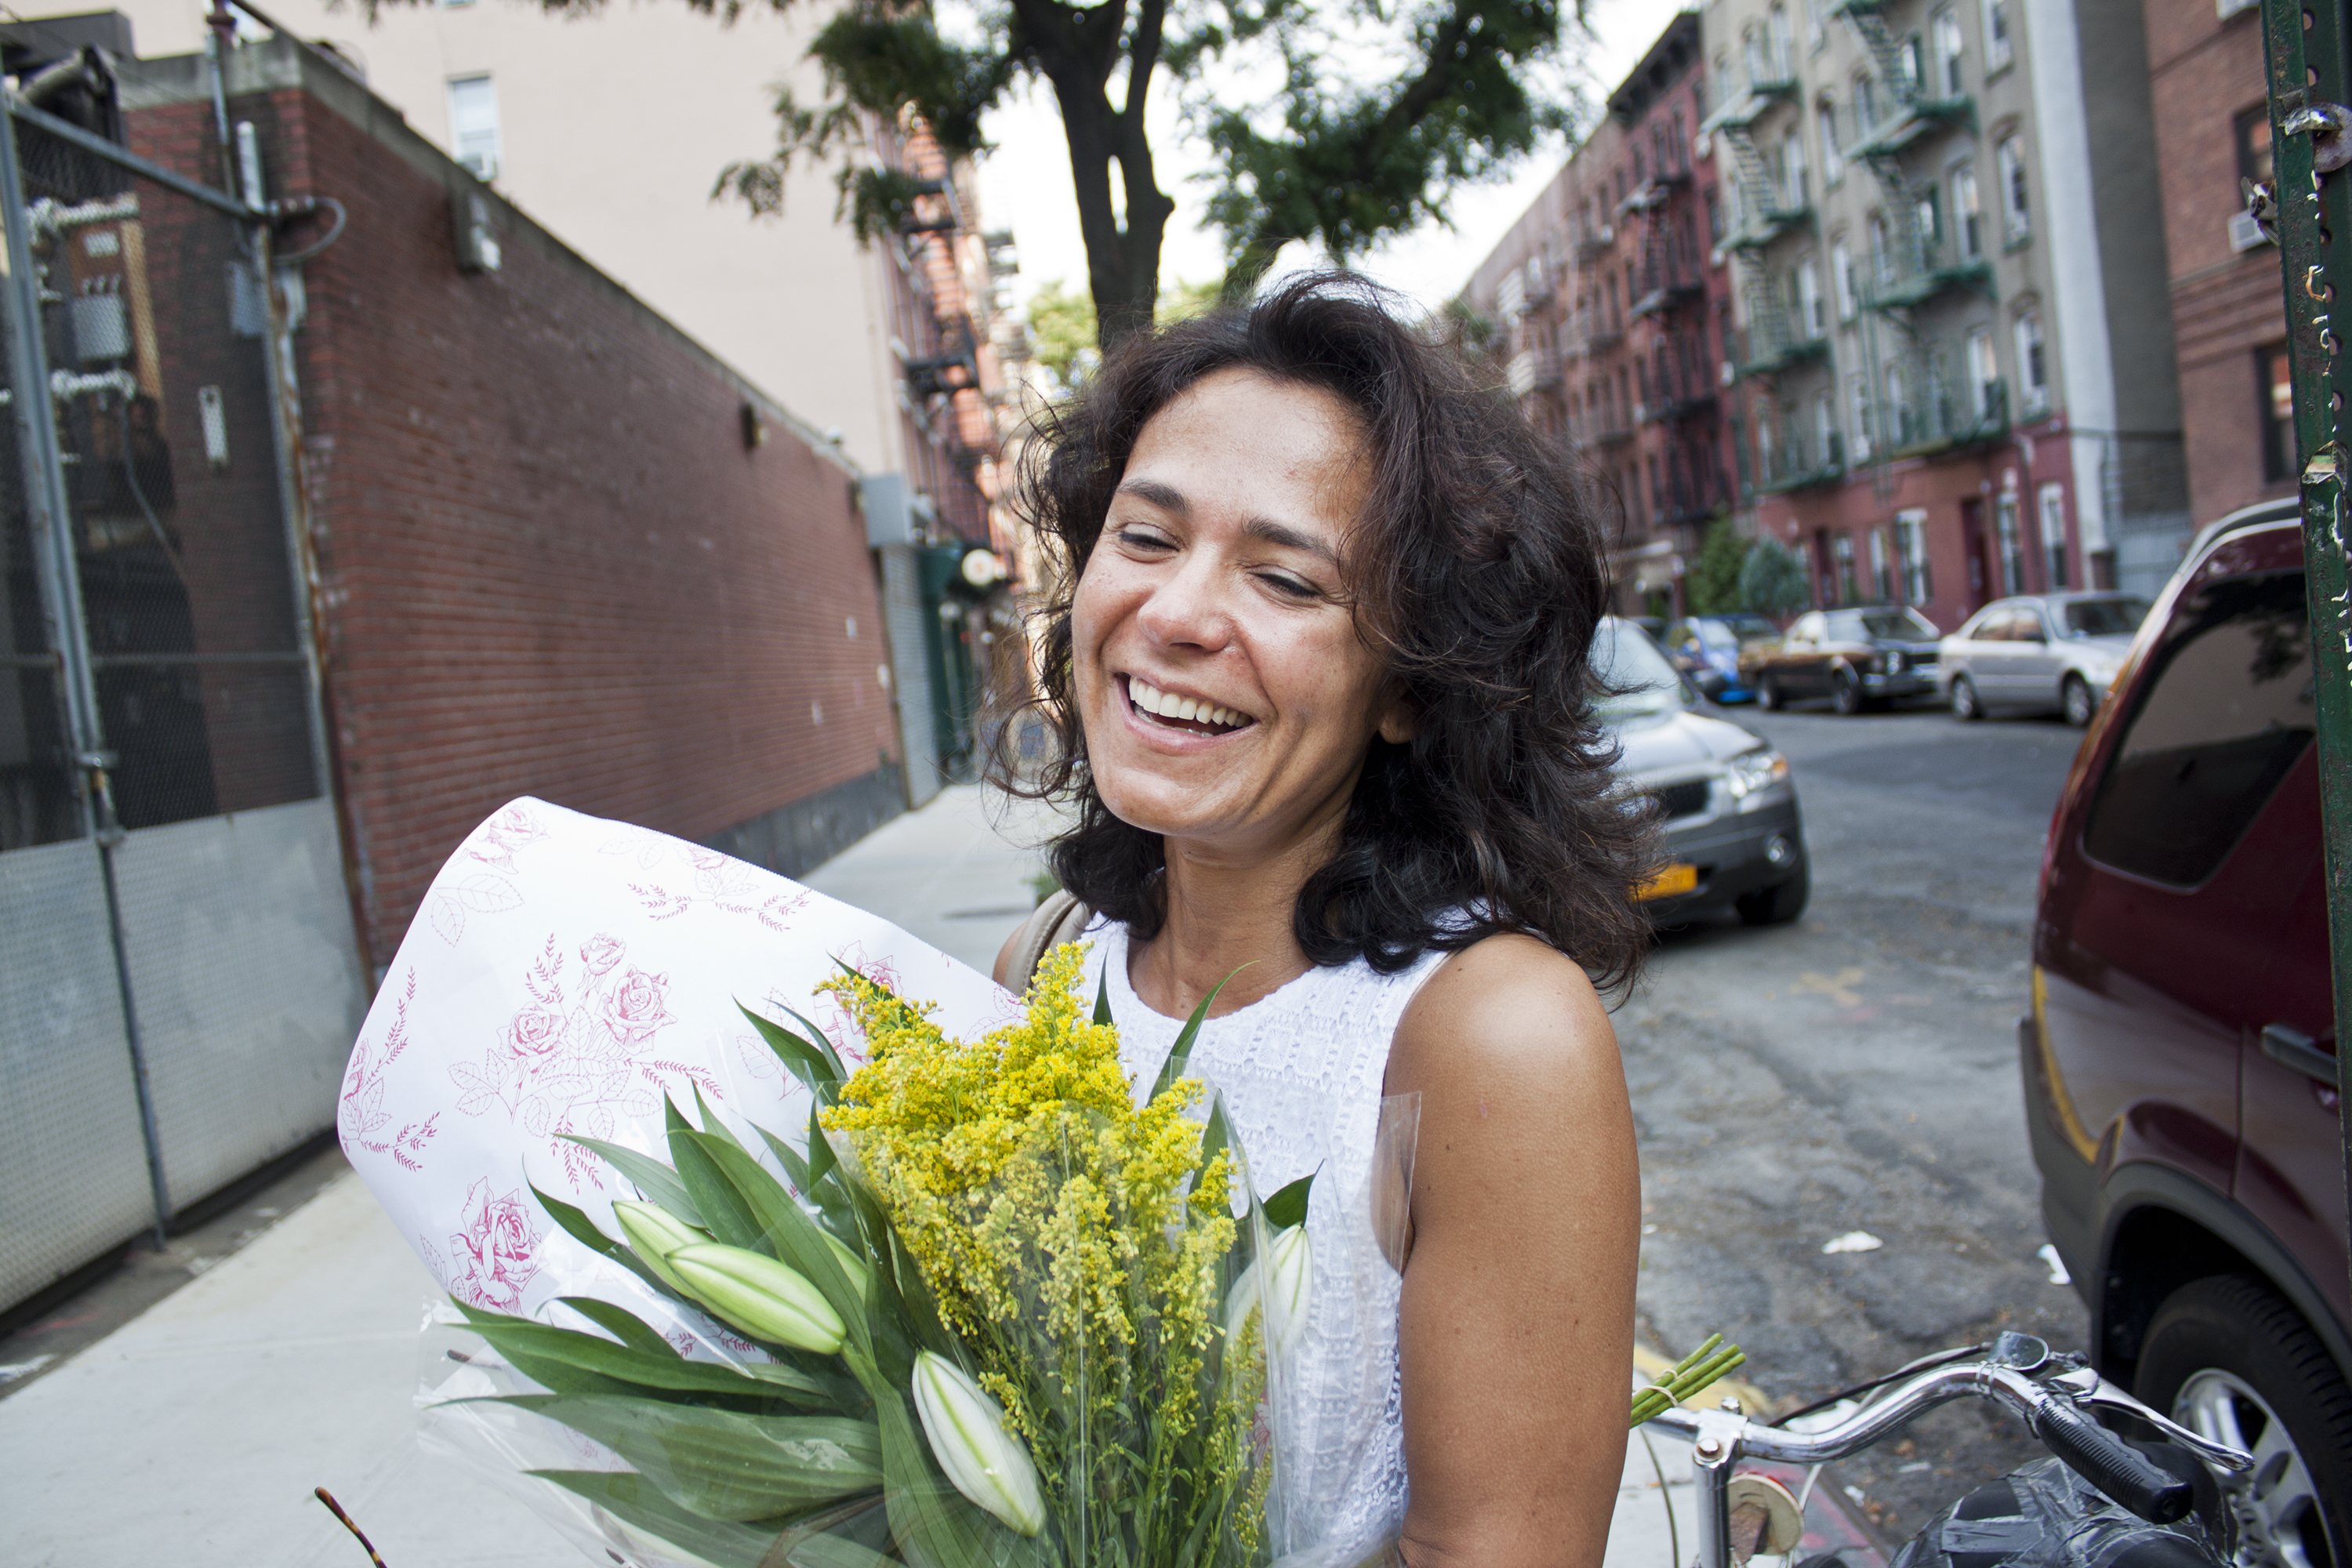 Ancela Nastasi pictured in New York, N.Y., on Aug. 11, 2012. (Steve Silva)